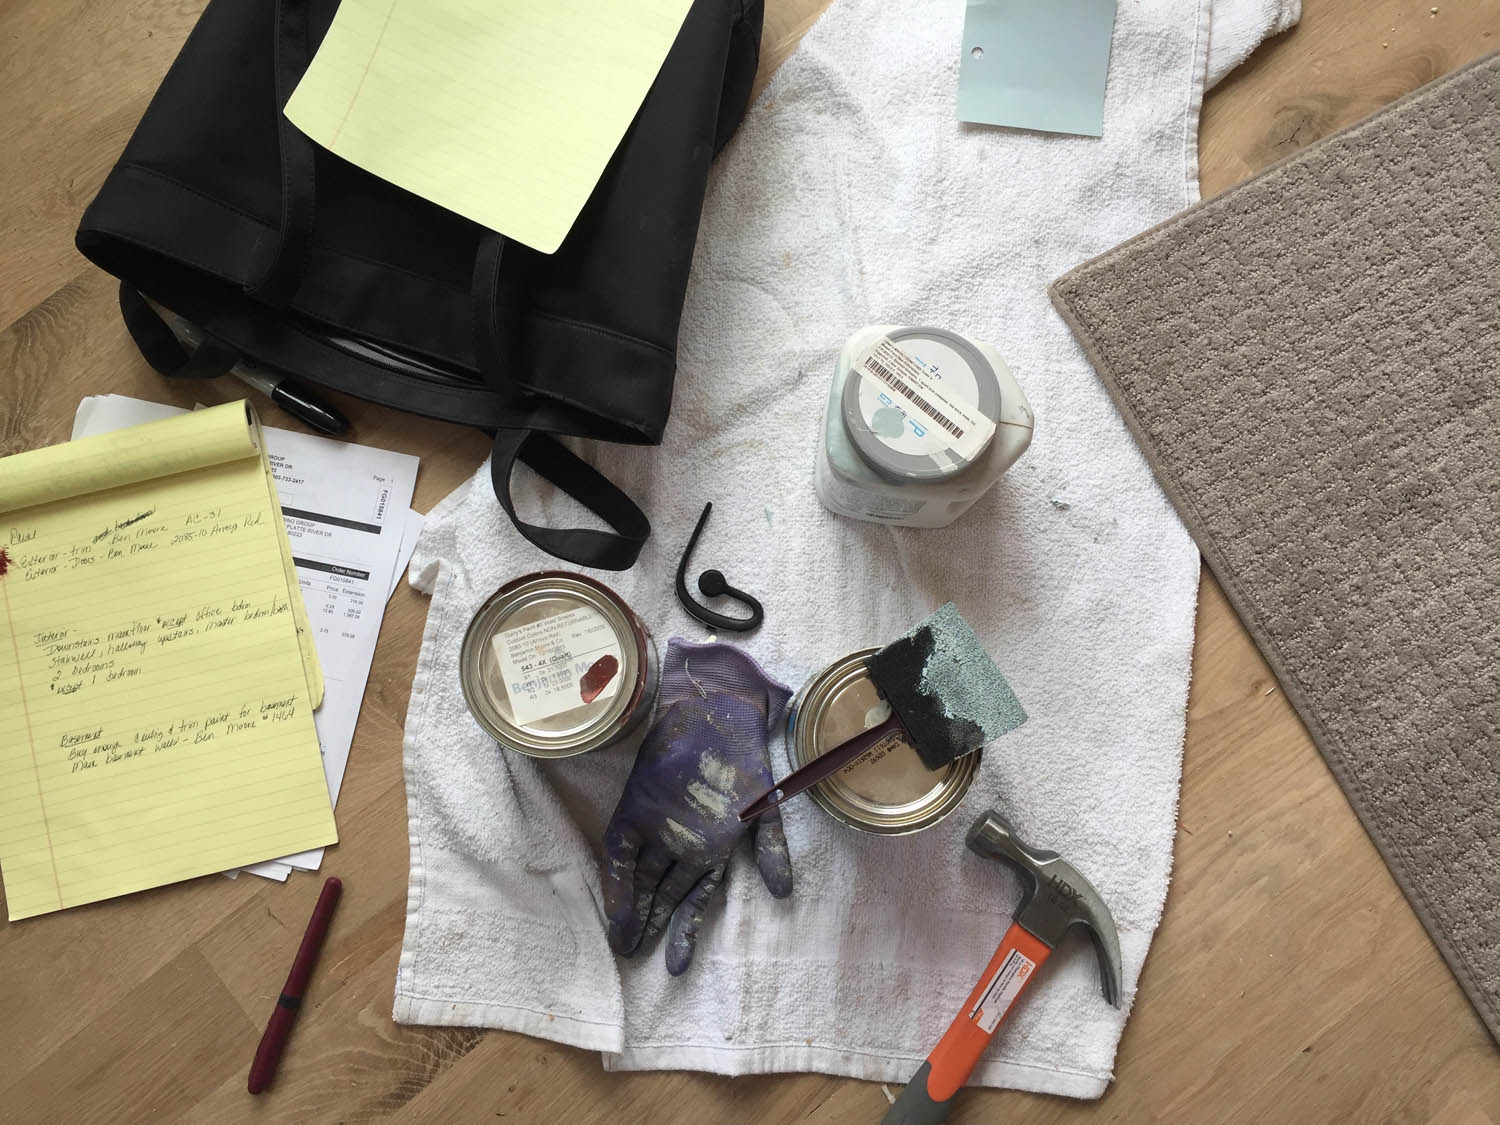 Office-on-the-go home remodel notes and tools